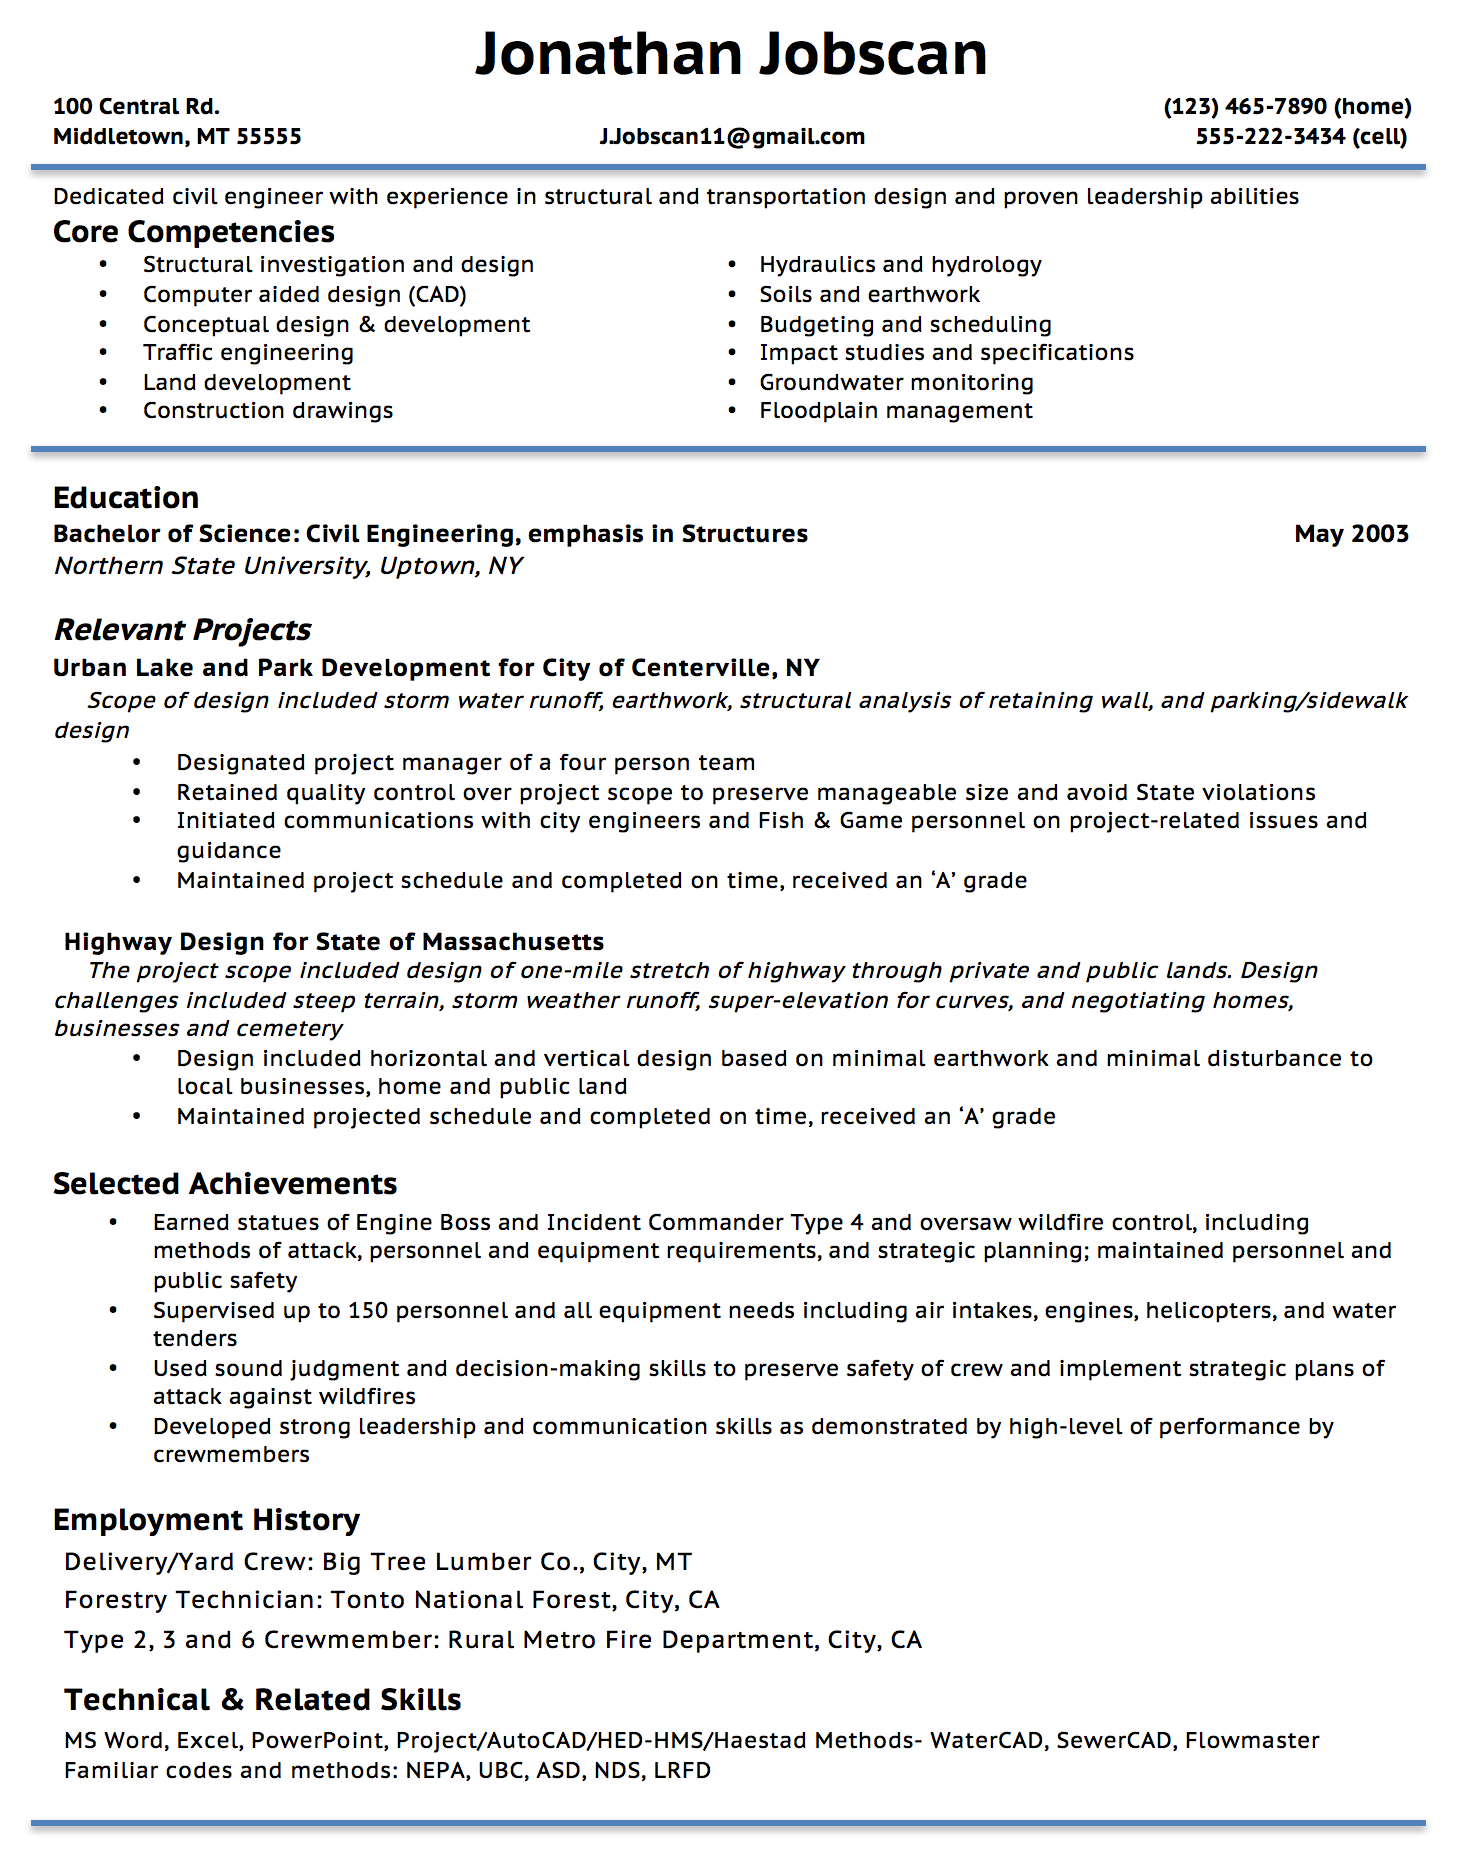 Opposenewapstandardsus  Marvellous Resume Writing Guide  Jobscan With Heavenly Example Of A Functional Resume Format With Cute Should You Put References On Your Resume Also High School Resume Template Microsoft Word In Addition Resume For Bookkeeper And Extracurricular Resume As Well As High School Student Resume Objective Additionally Good Fonts For Resume From Jobscanco With Opposenewapstandardsus  Heavenly Resume Writing Guide  Jobscan With Cute Example Of A Functional Resume Format And Marvellous Should You Put References On Your Resume Also High School Resume Template Microsoft Word In Addition Resume For Bookkeeper From Jobscanco